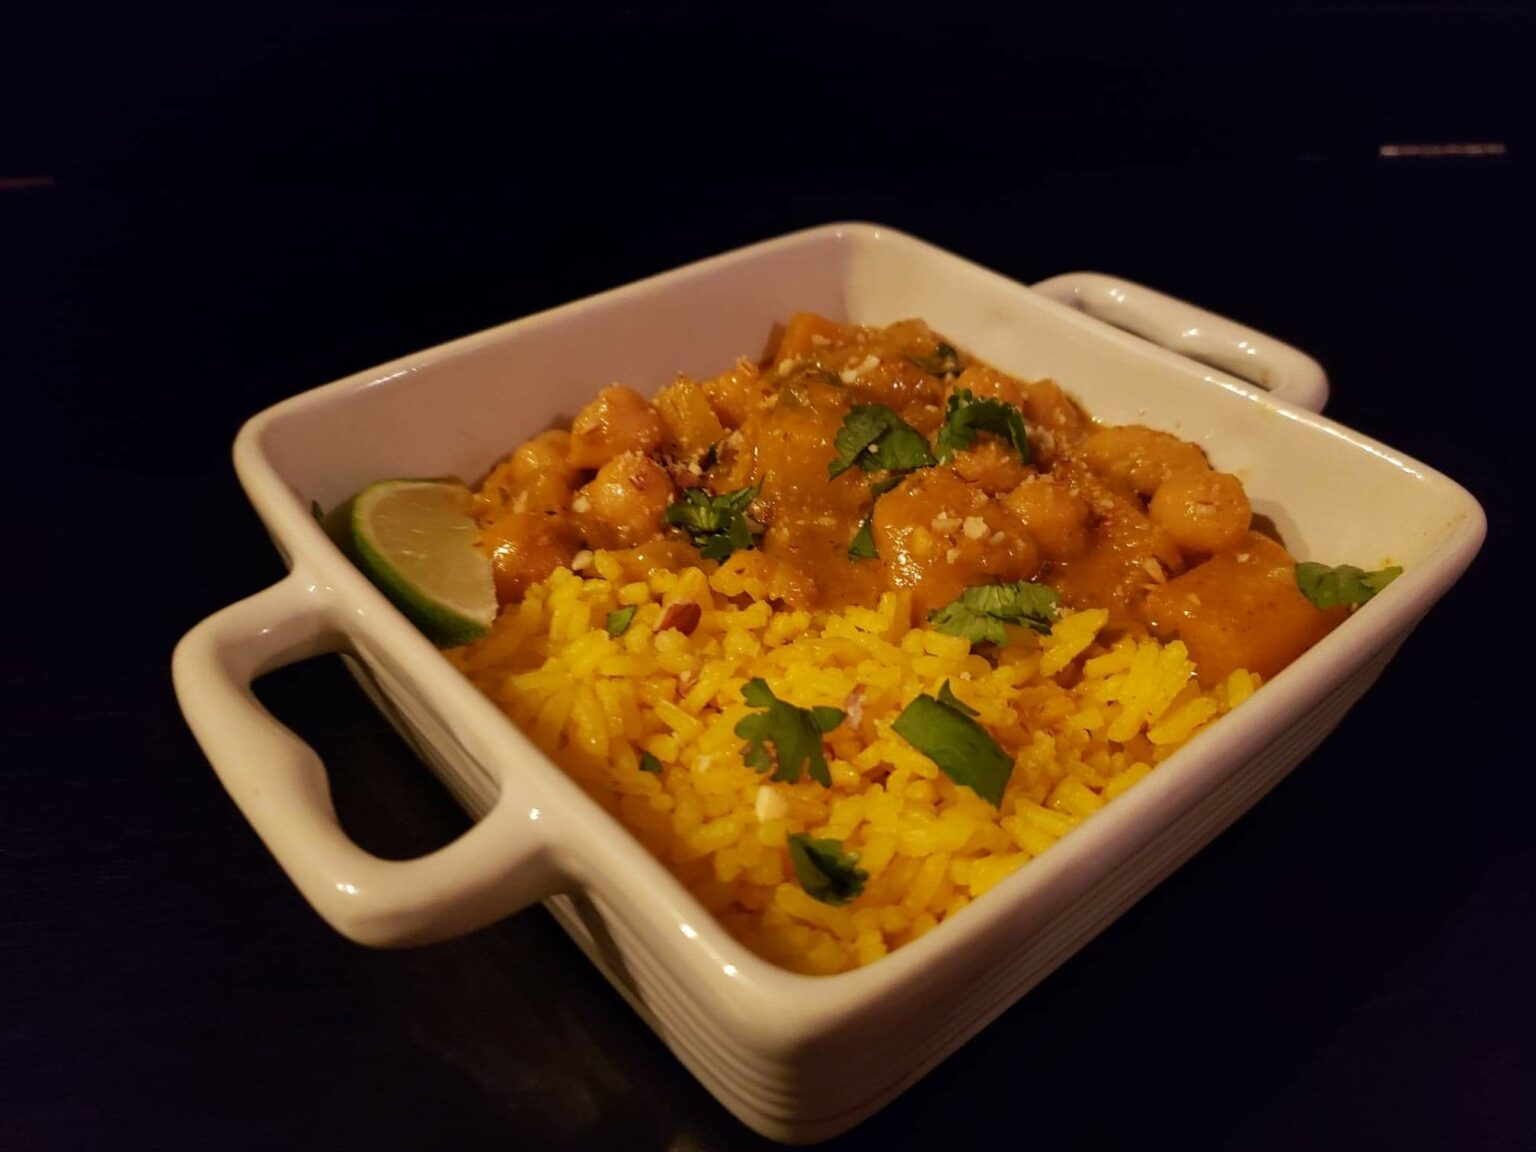 Image of butternut squash curry with rice in a bowl